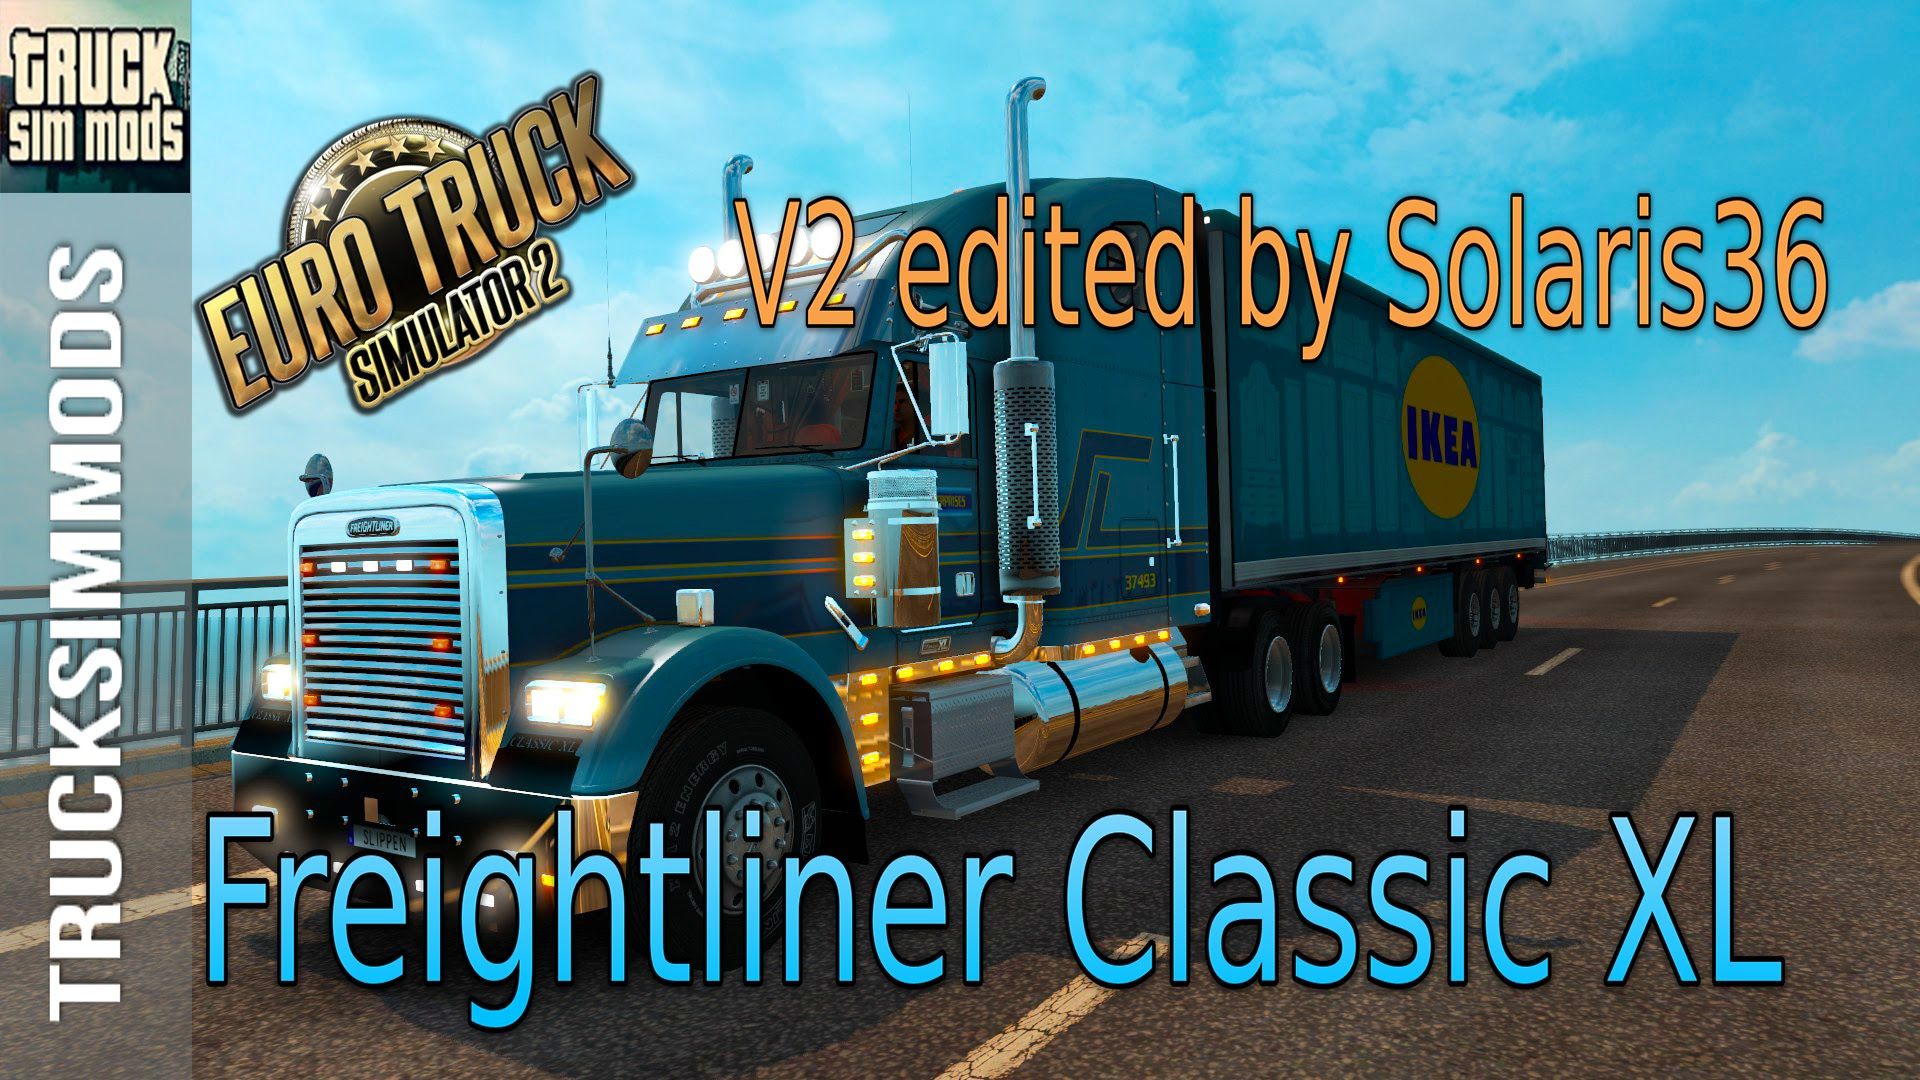 Freightliner Classic XL + Interior v2.0 (Custom) by Solaris36 (1.25.x)